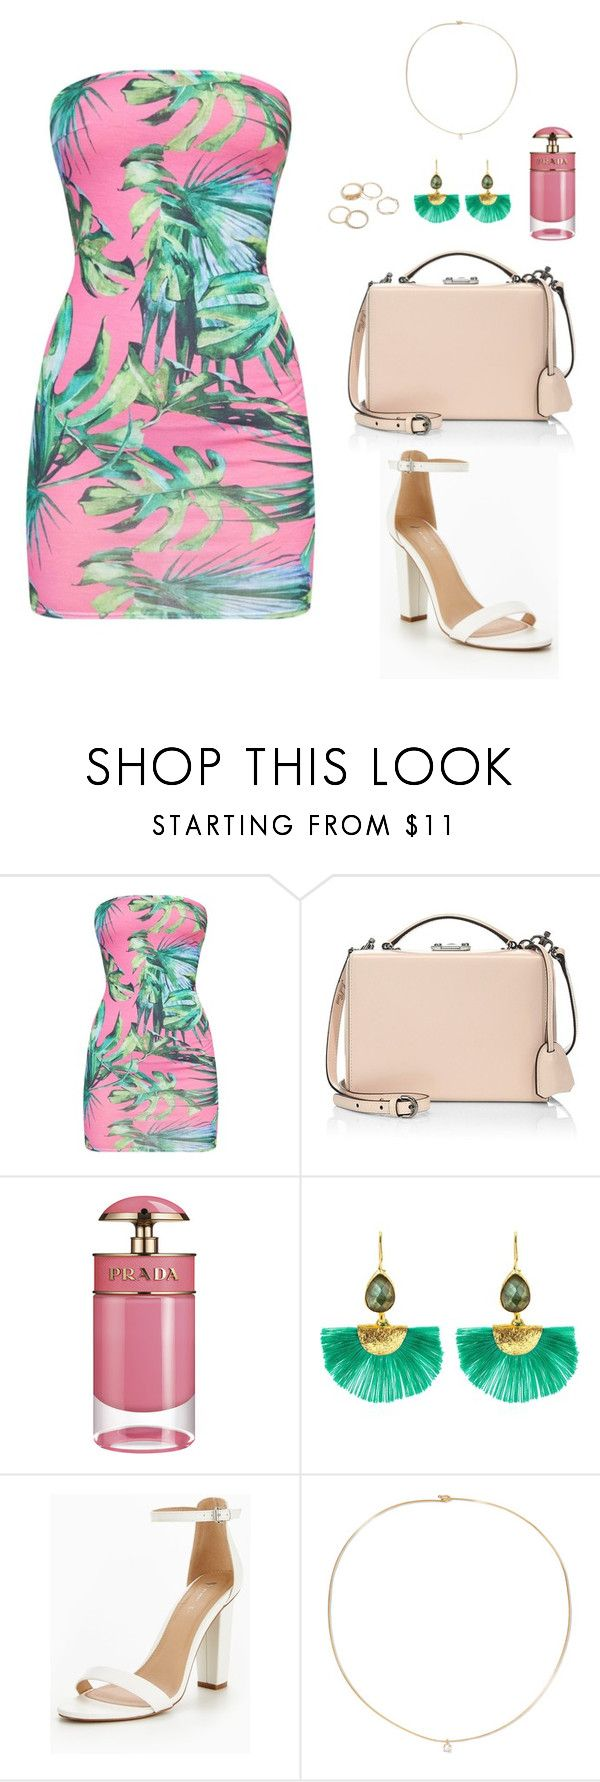 """""""Tropical"""" by hayleyl22 ❤ liked on Polyvore featuring Mark Cross, Prada, Ottoman Hands and Loren Stewart"""